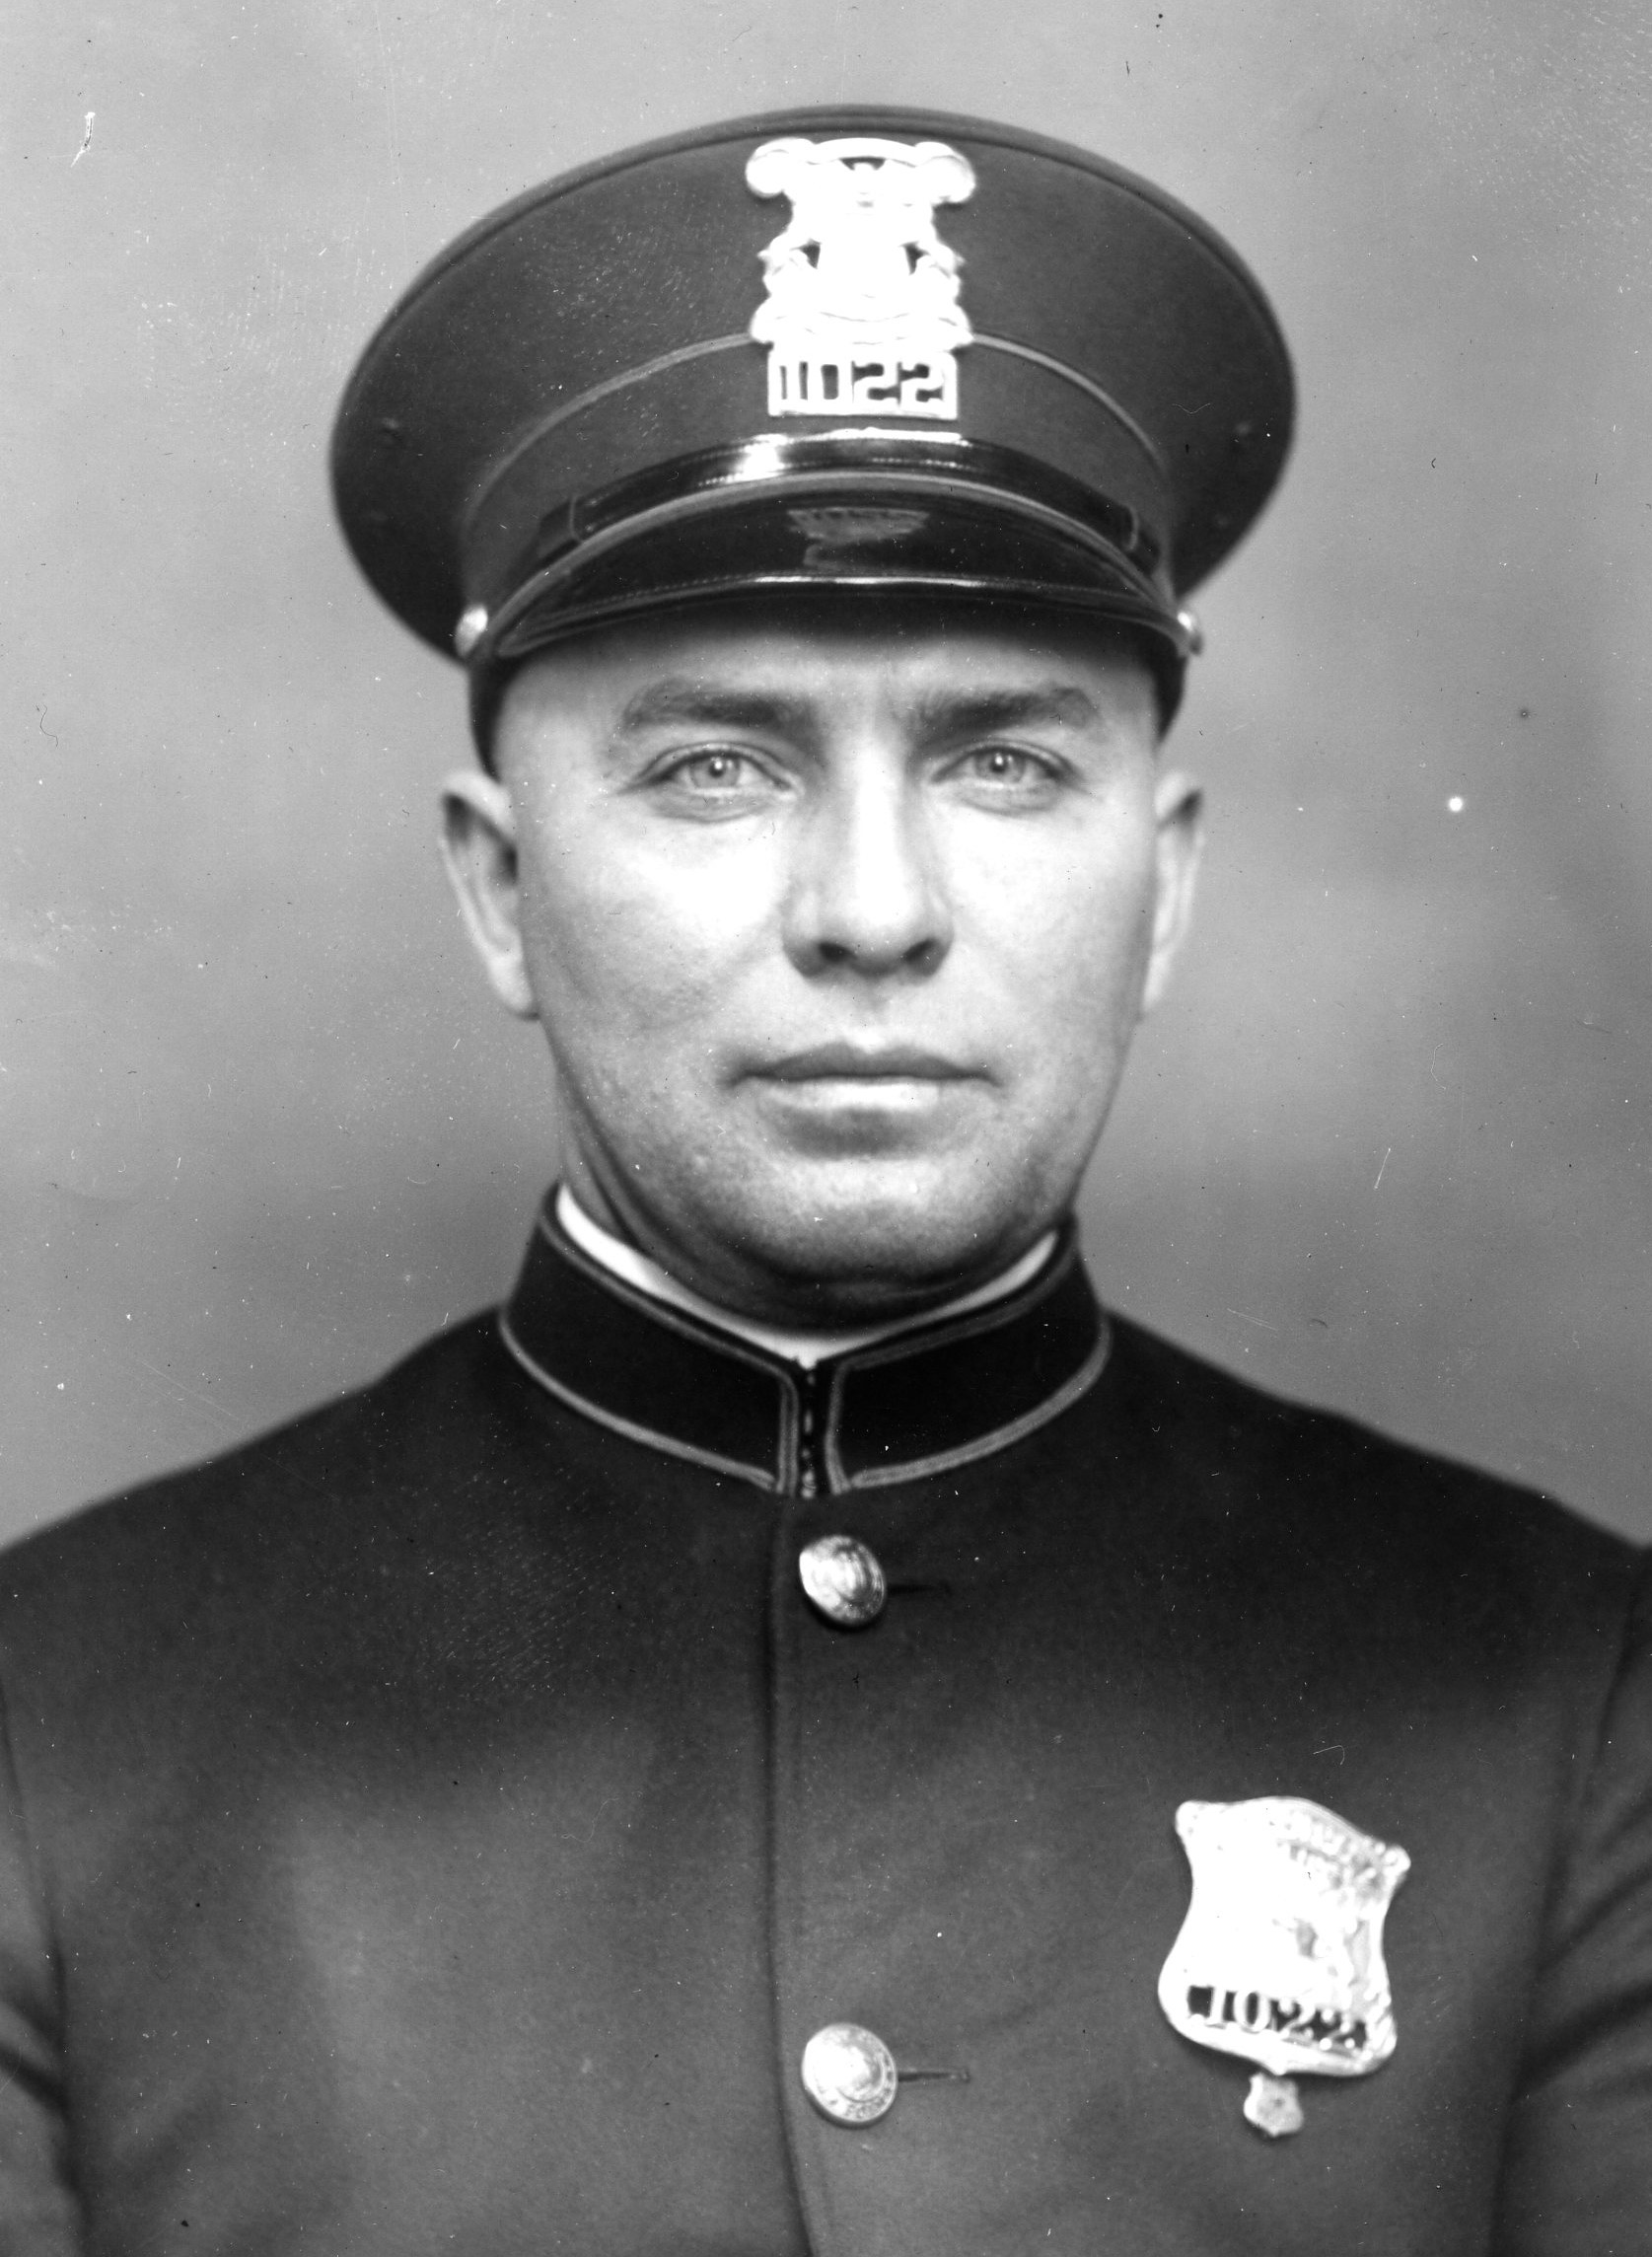 Police Officer Otto A. Balk | Detroit Police Department, Michigan